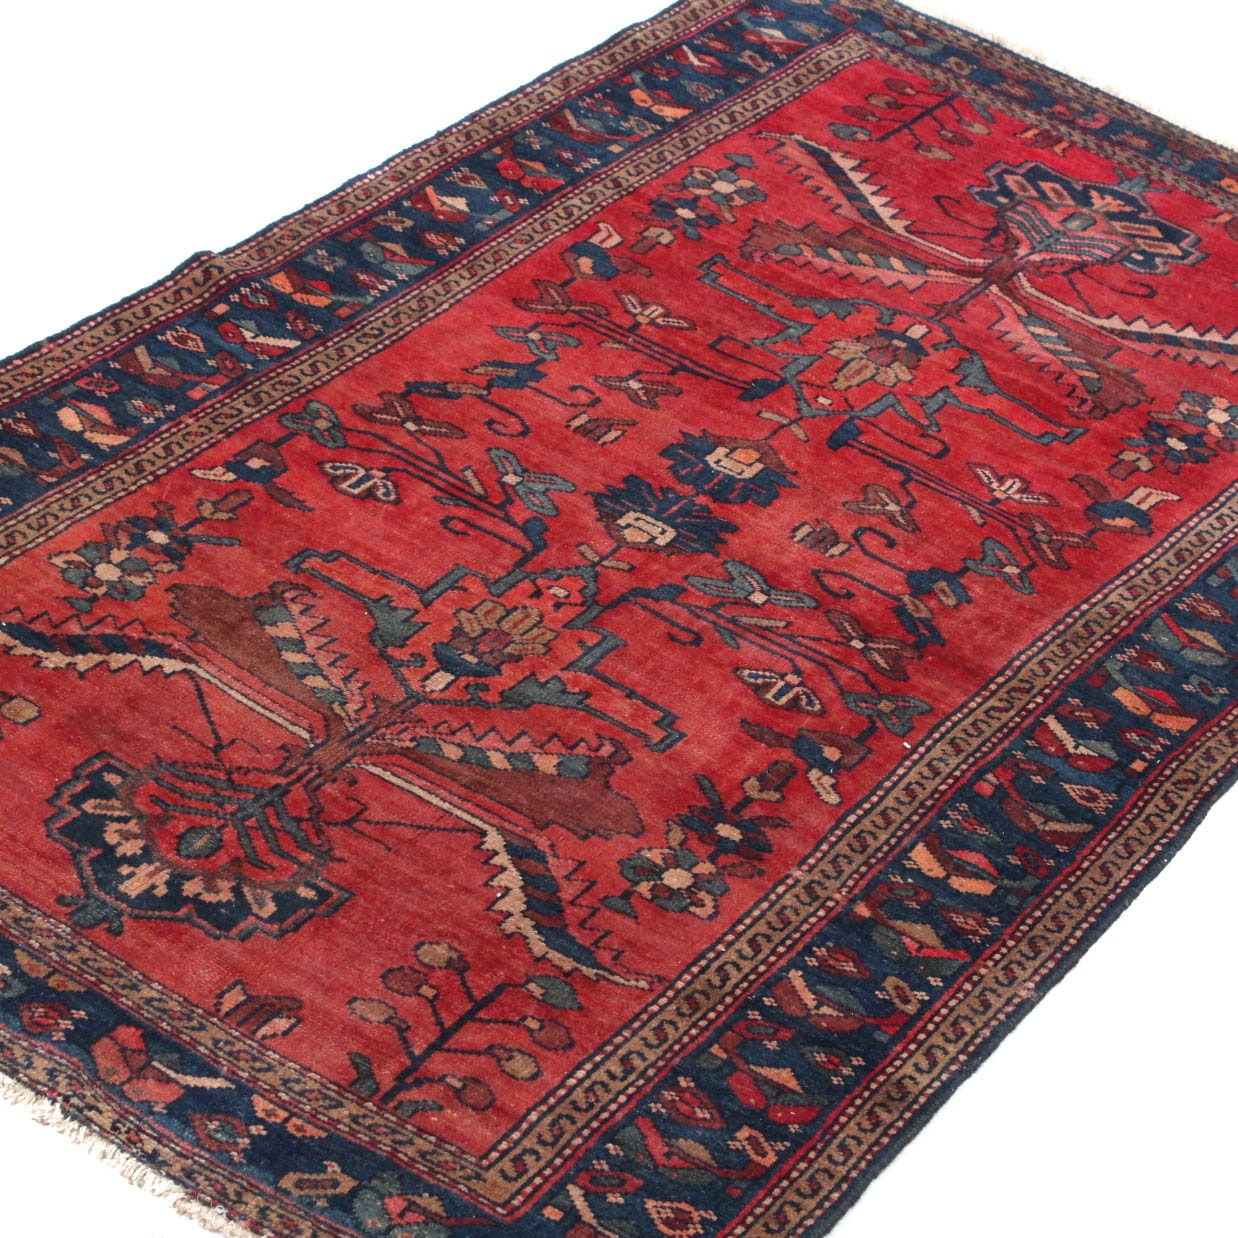 Tufted chinese wool floral accent rug ebth - Handmade Mcadoo Hook Rug Ebth